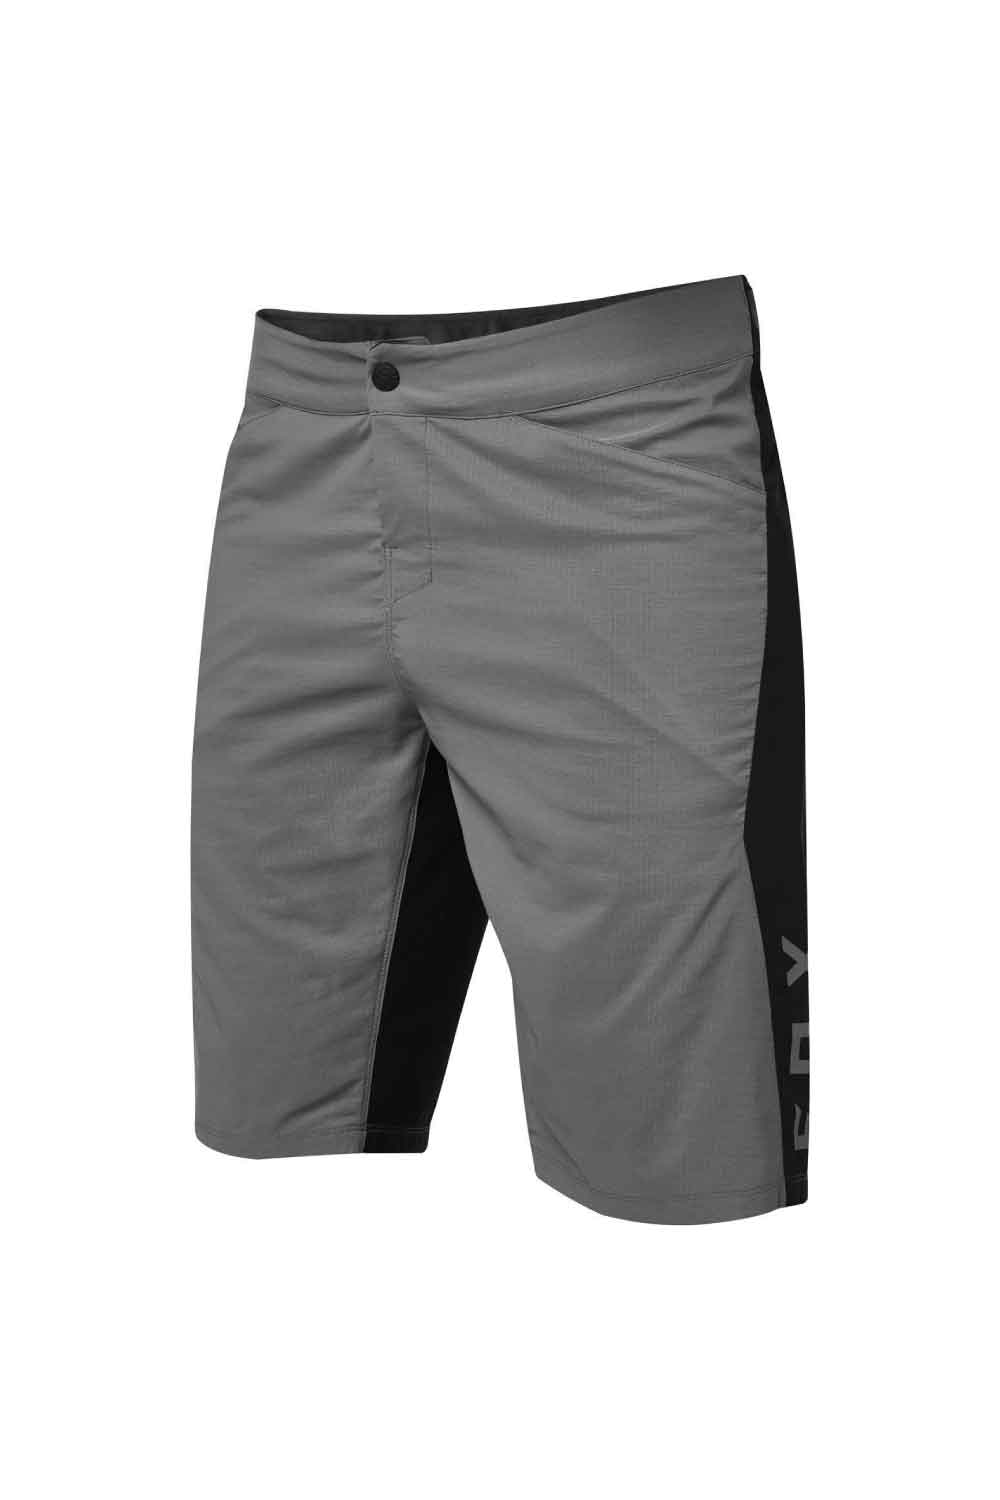 FOX Racing 2020 Men's Ranger Water MTB Bike Short Pewter